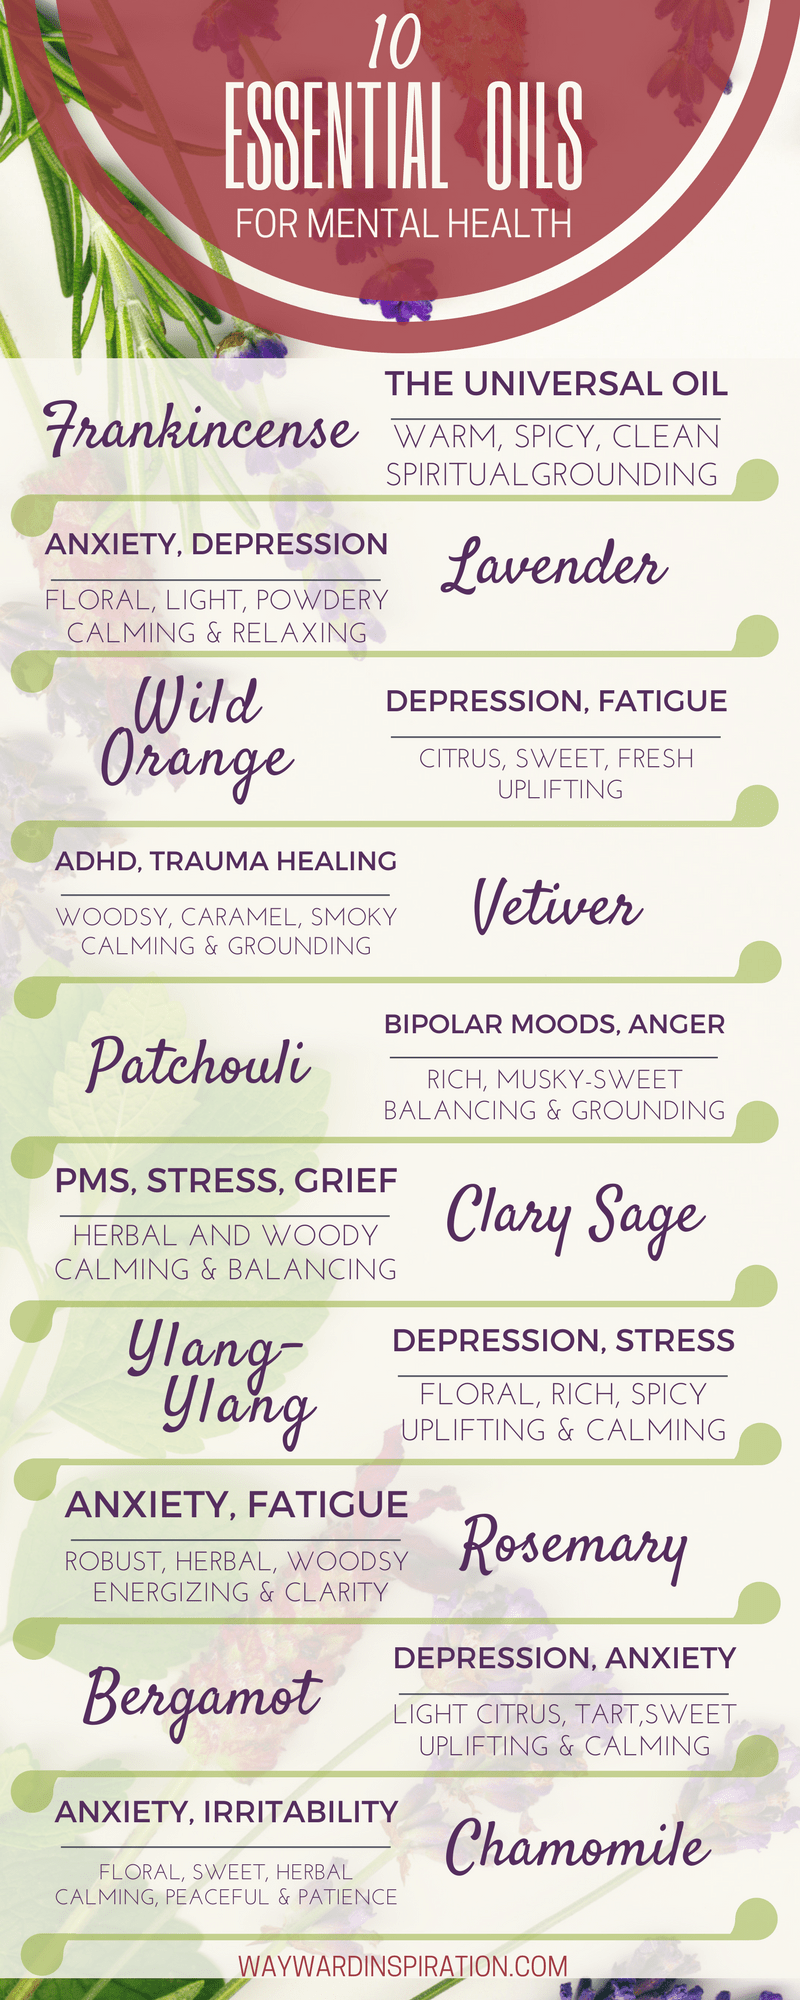 INFOGRAPHIC - 10 Essential Oils for Mental Health